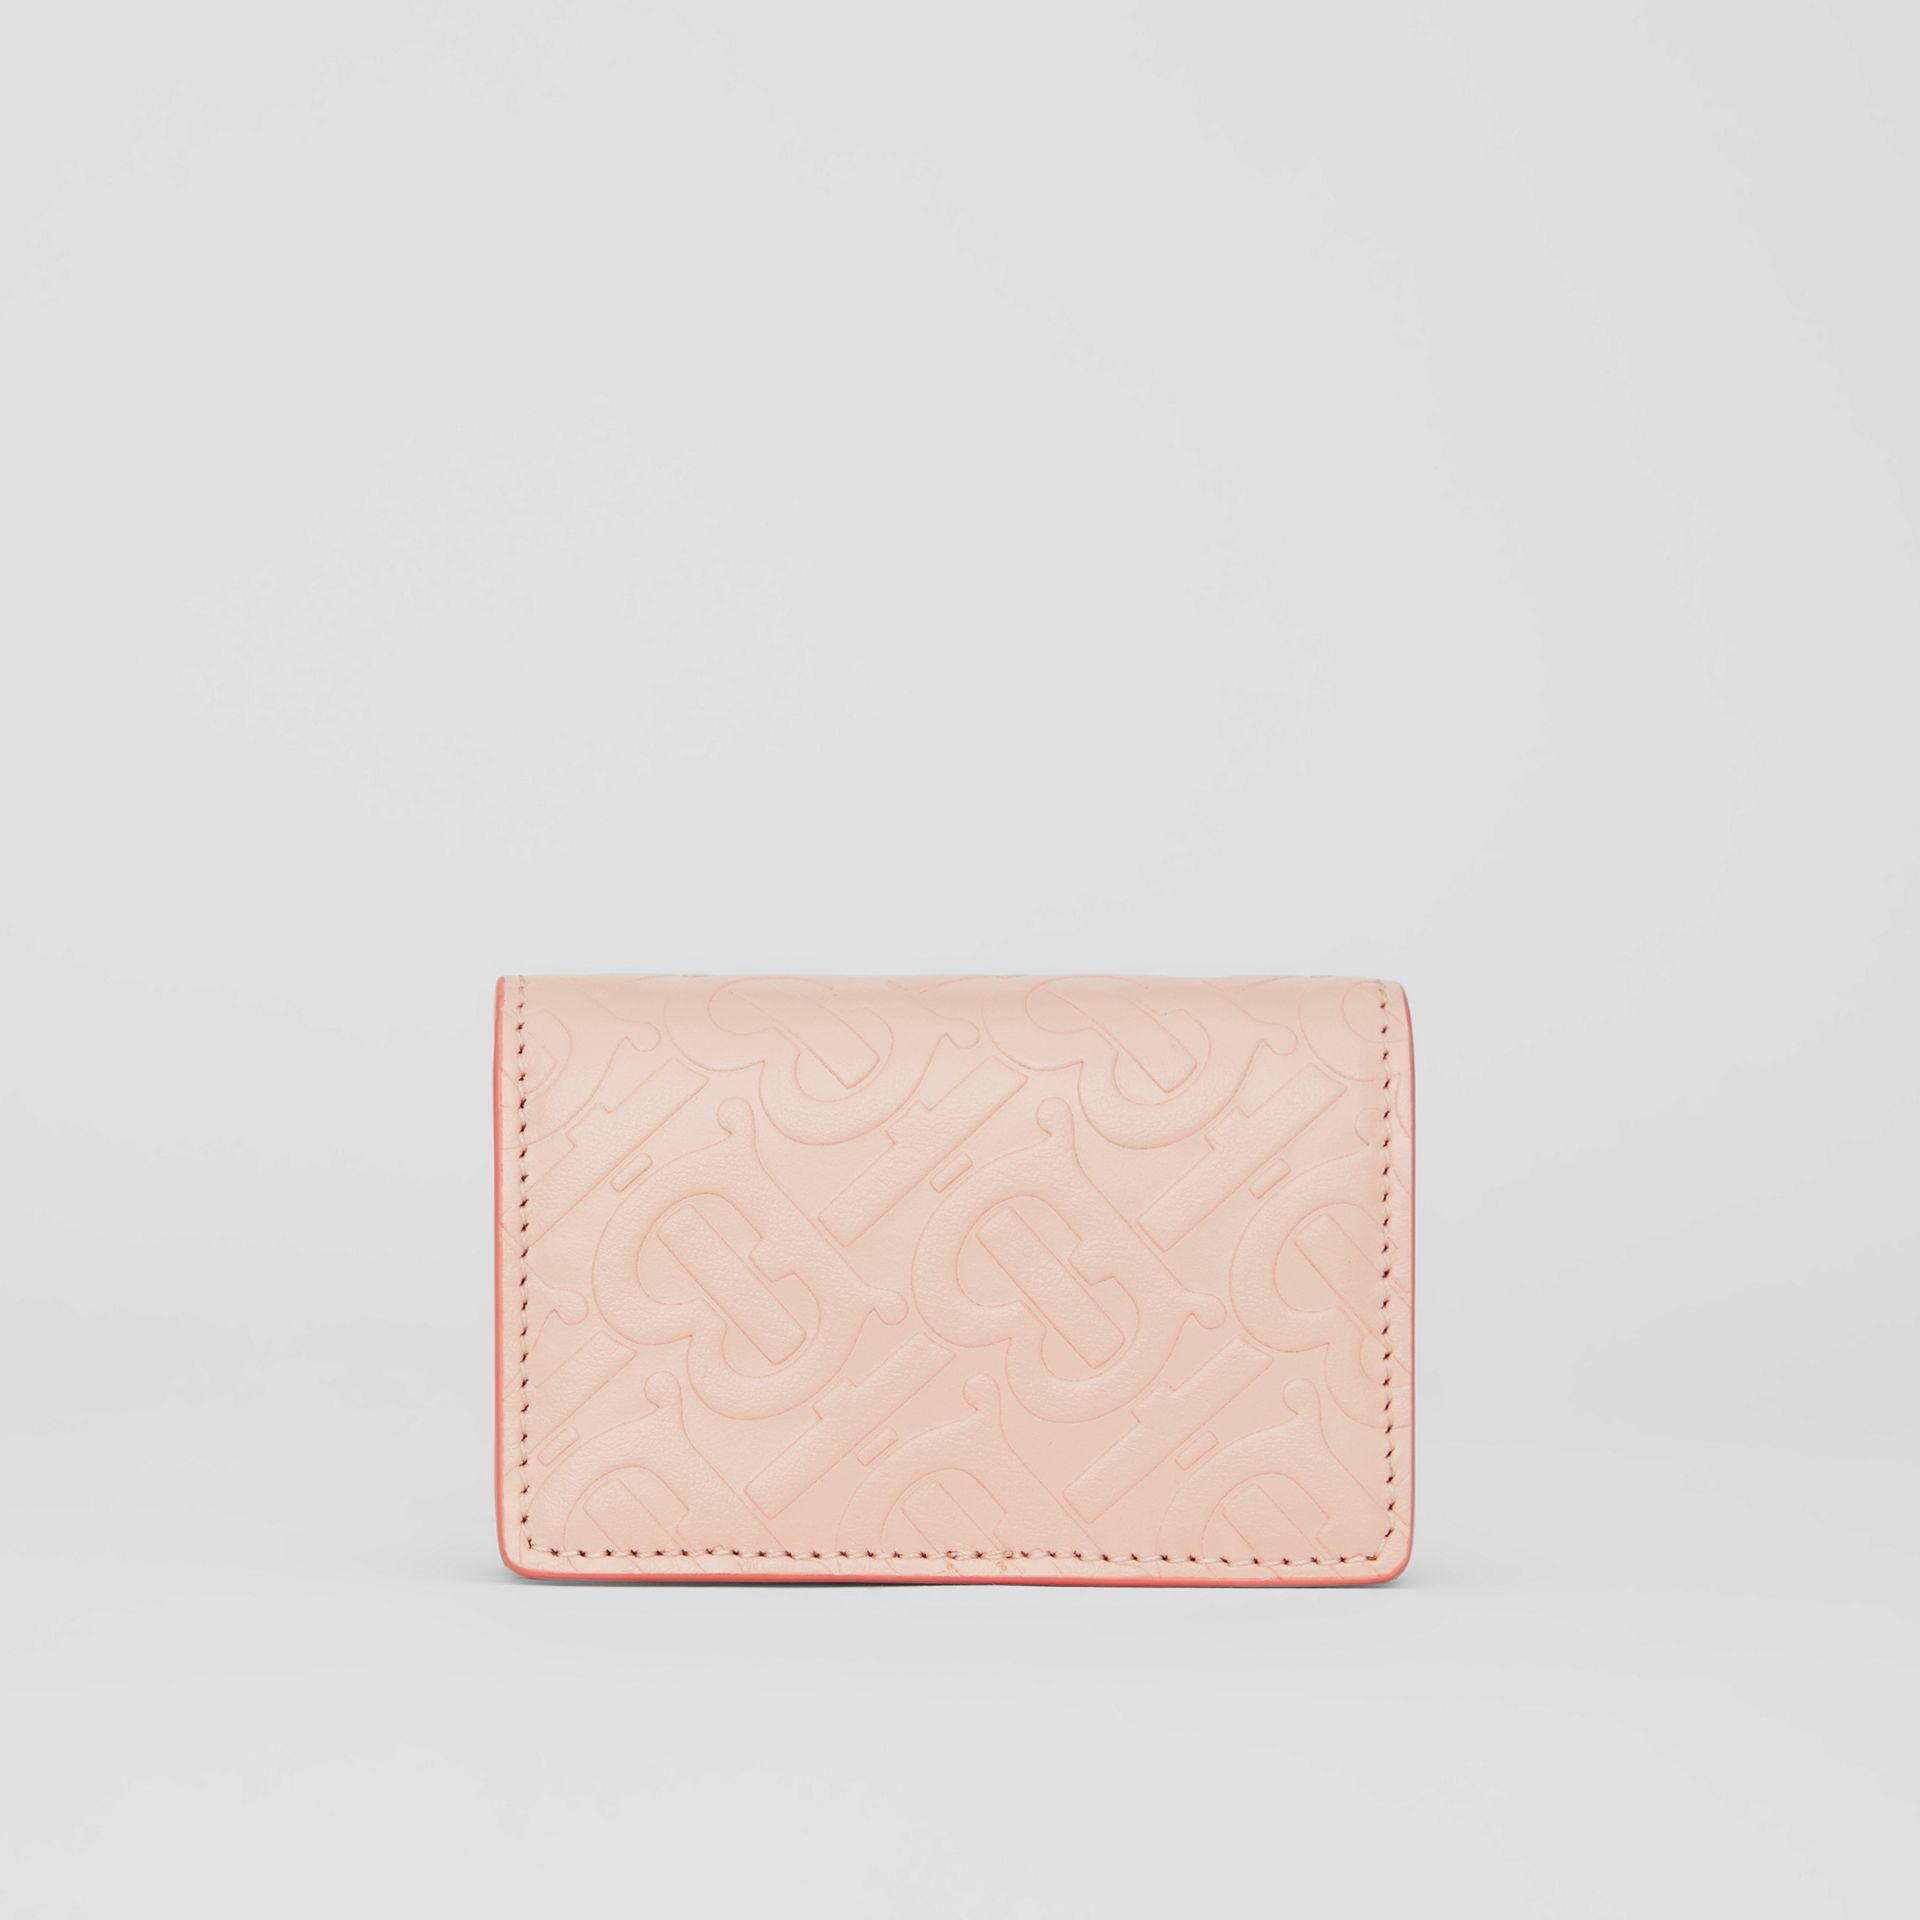 Monogram Leather Card Case in Rose Beige | Burberry - gallery image 4